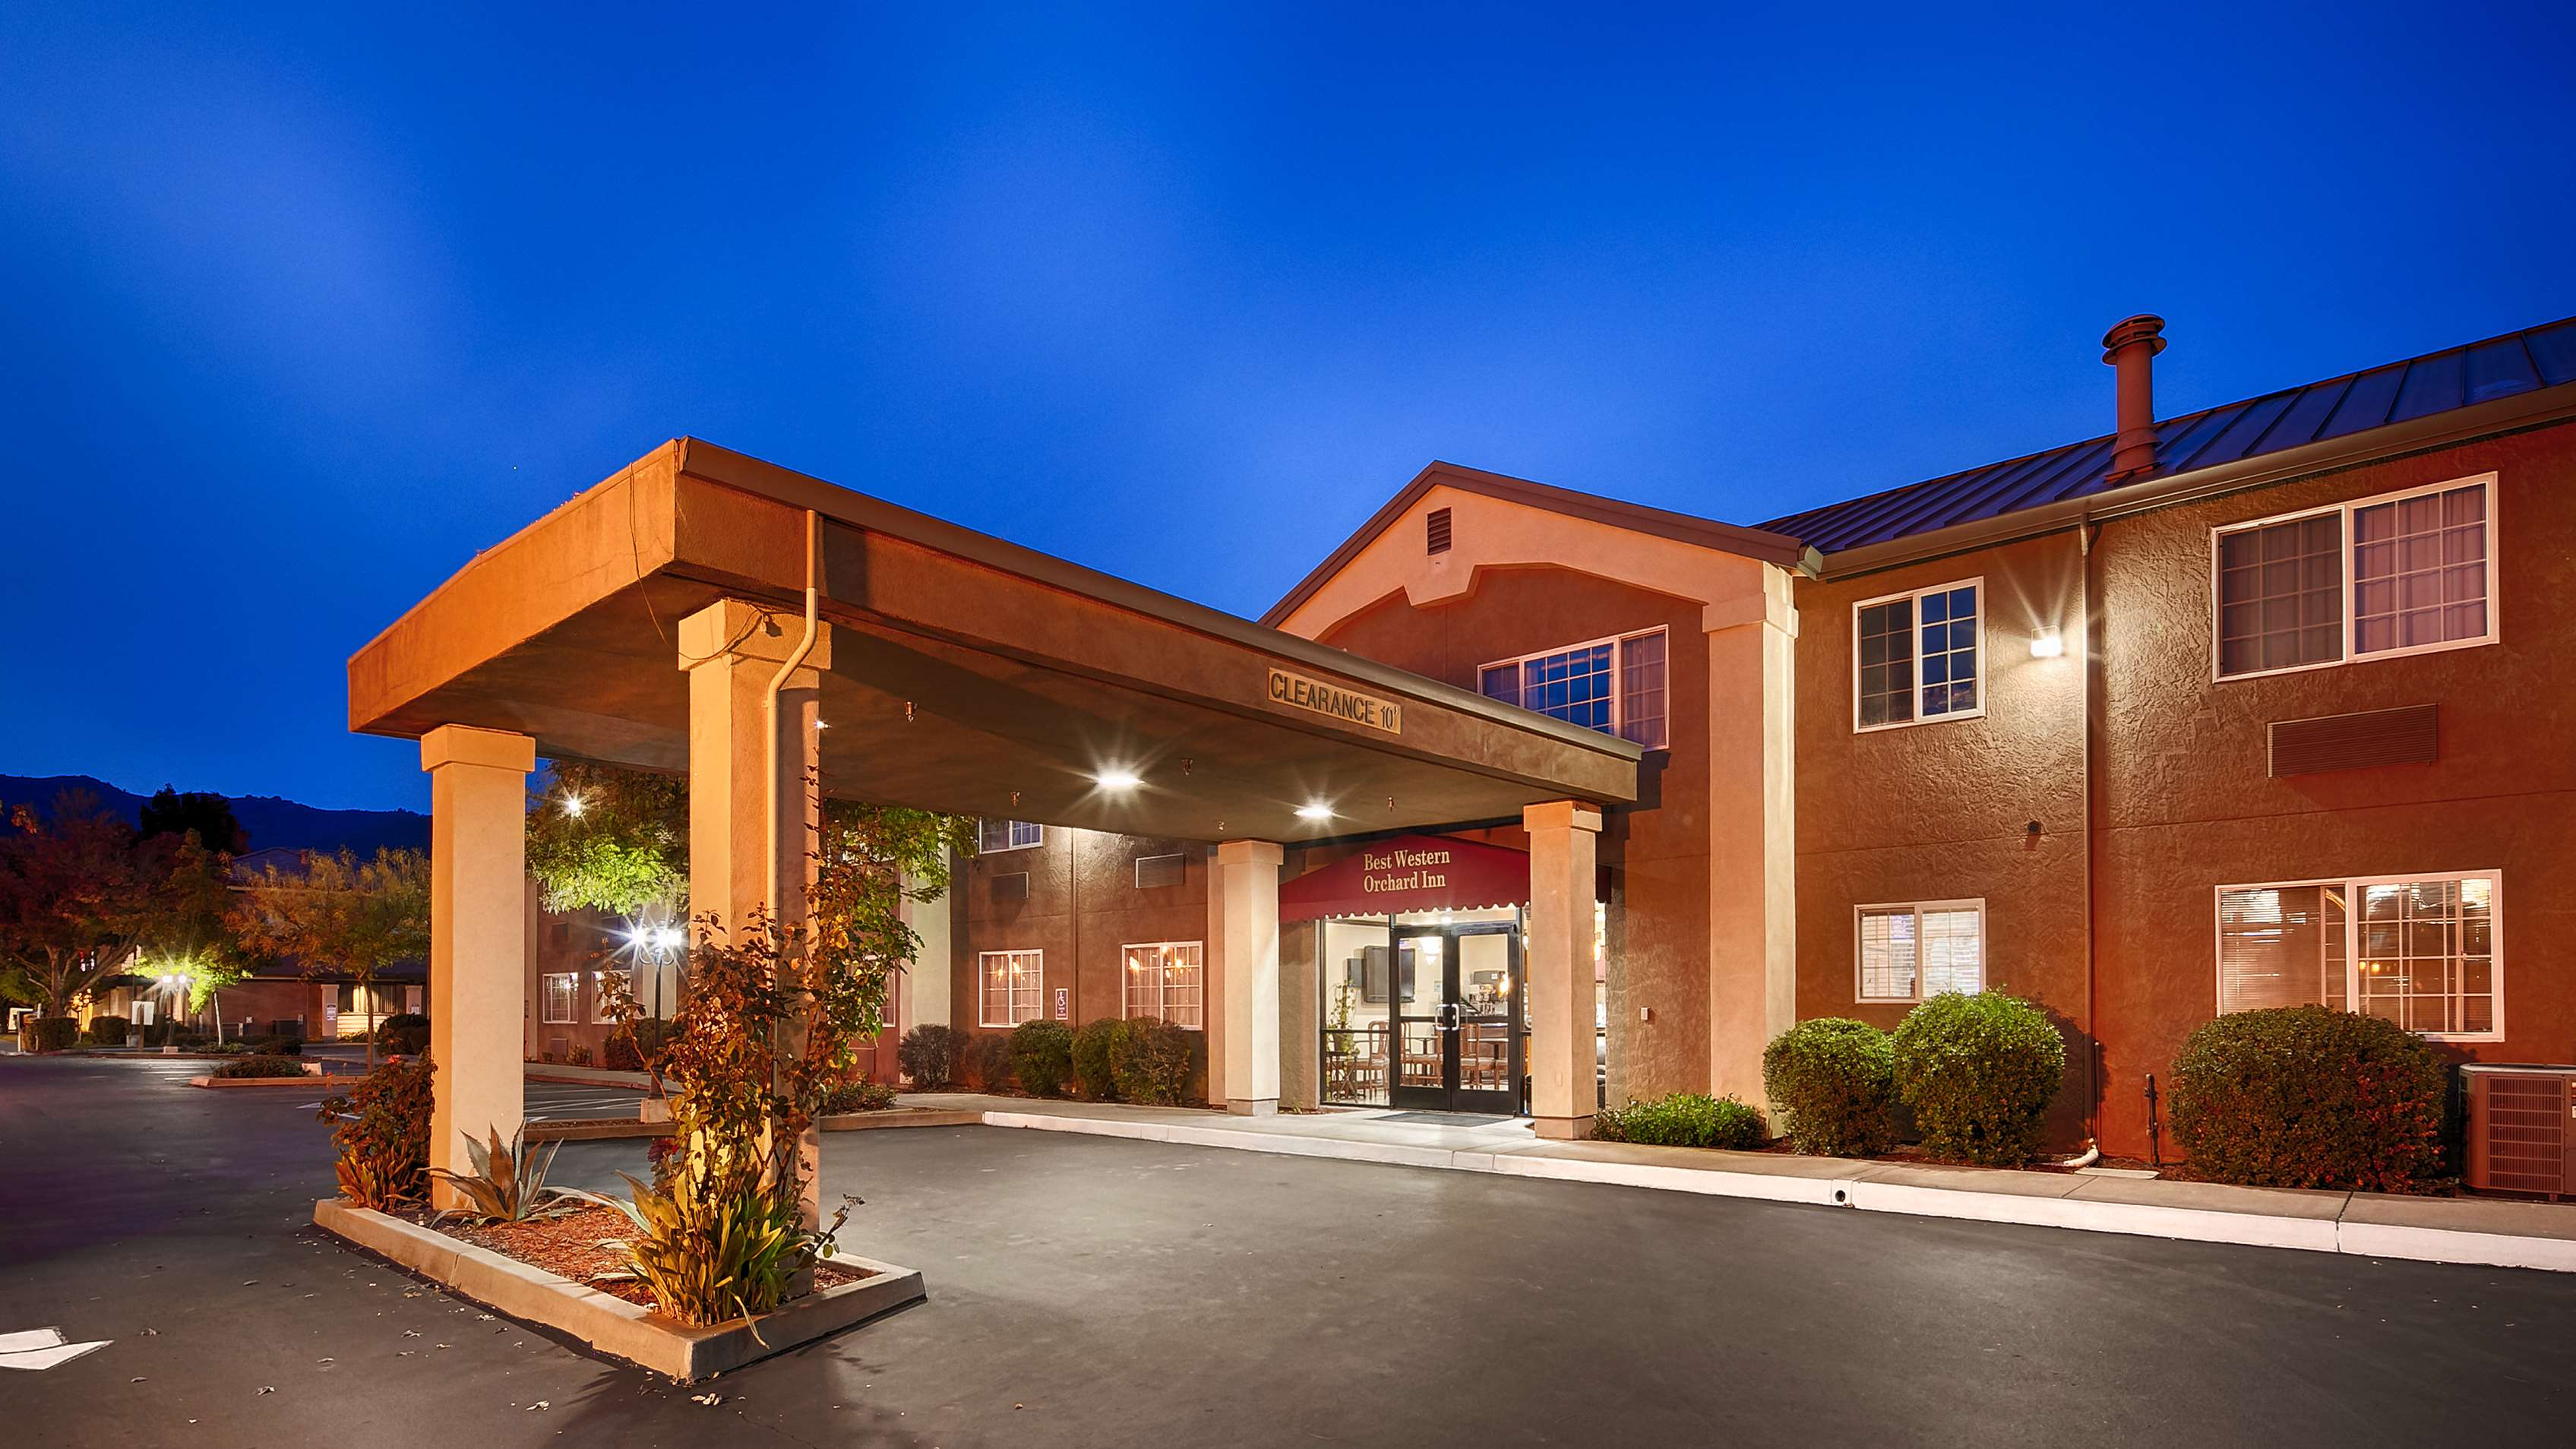 Best Western Orchard Inn At 555 S Orchard Ave  Ukiah  Ca